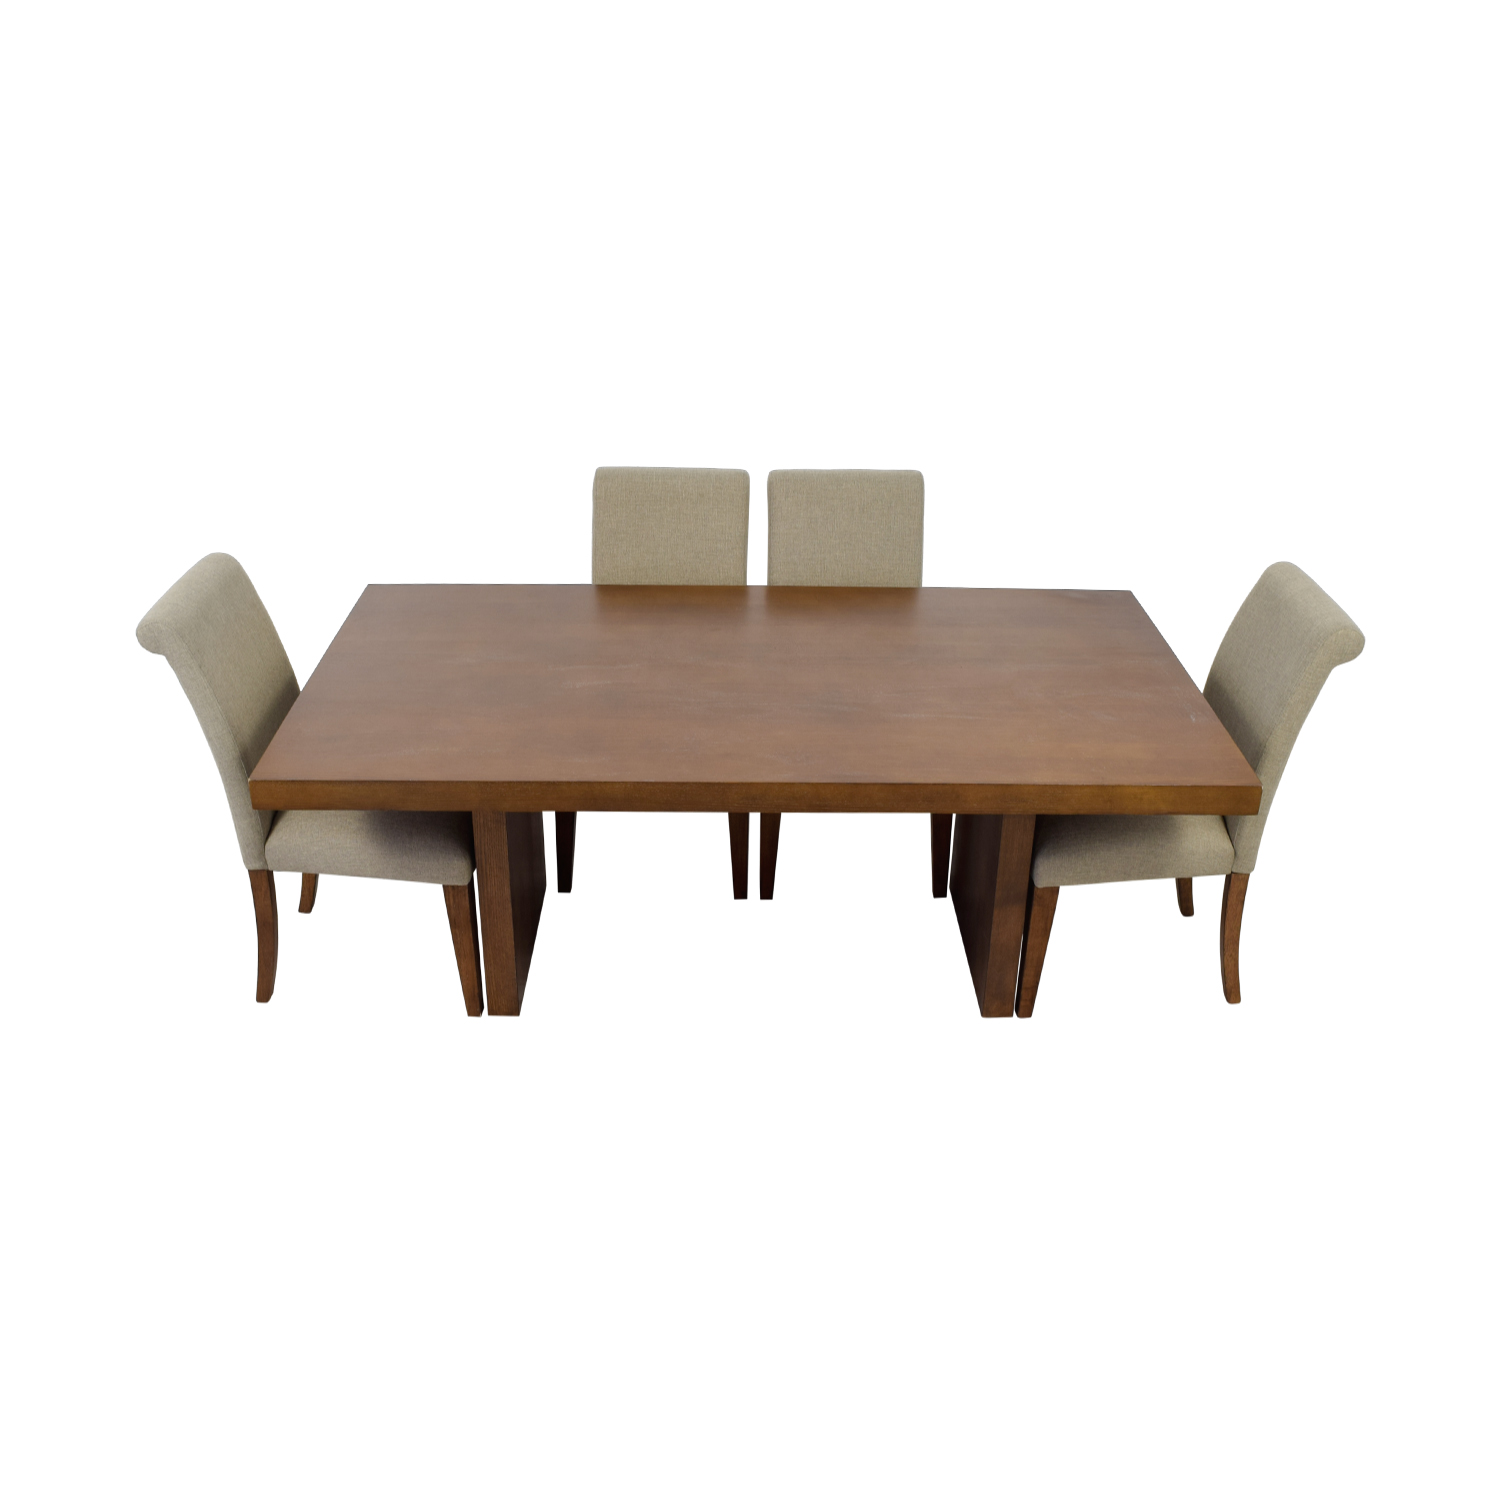 Macy's Wood Dining Set with Upholstered Chairs / Dining Sets